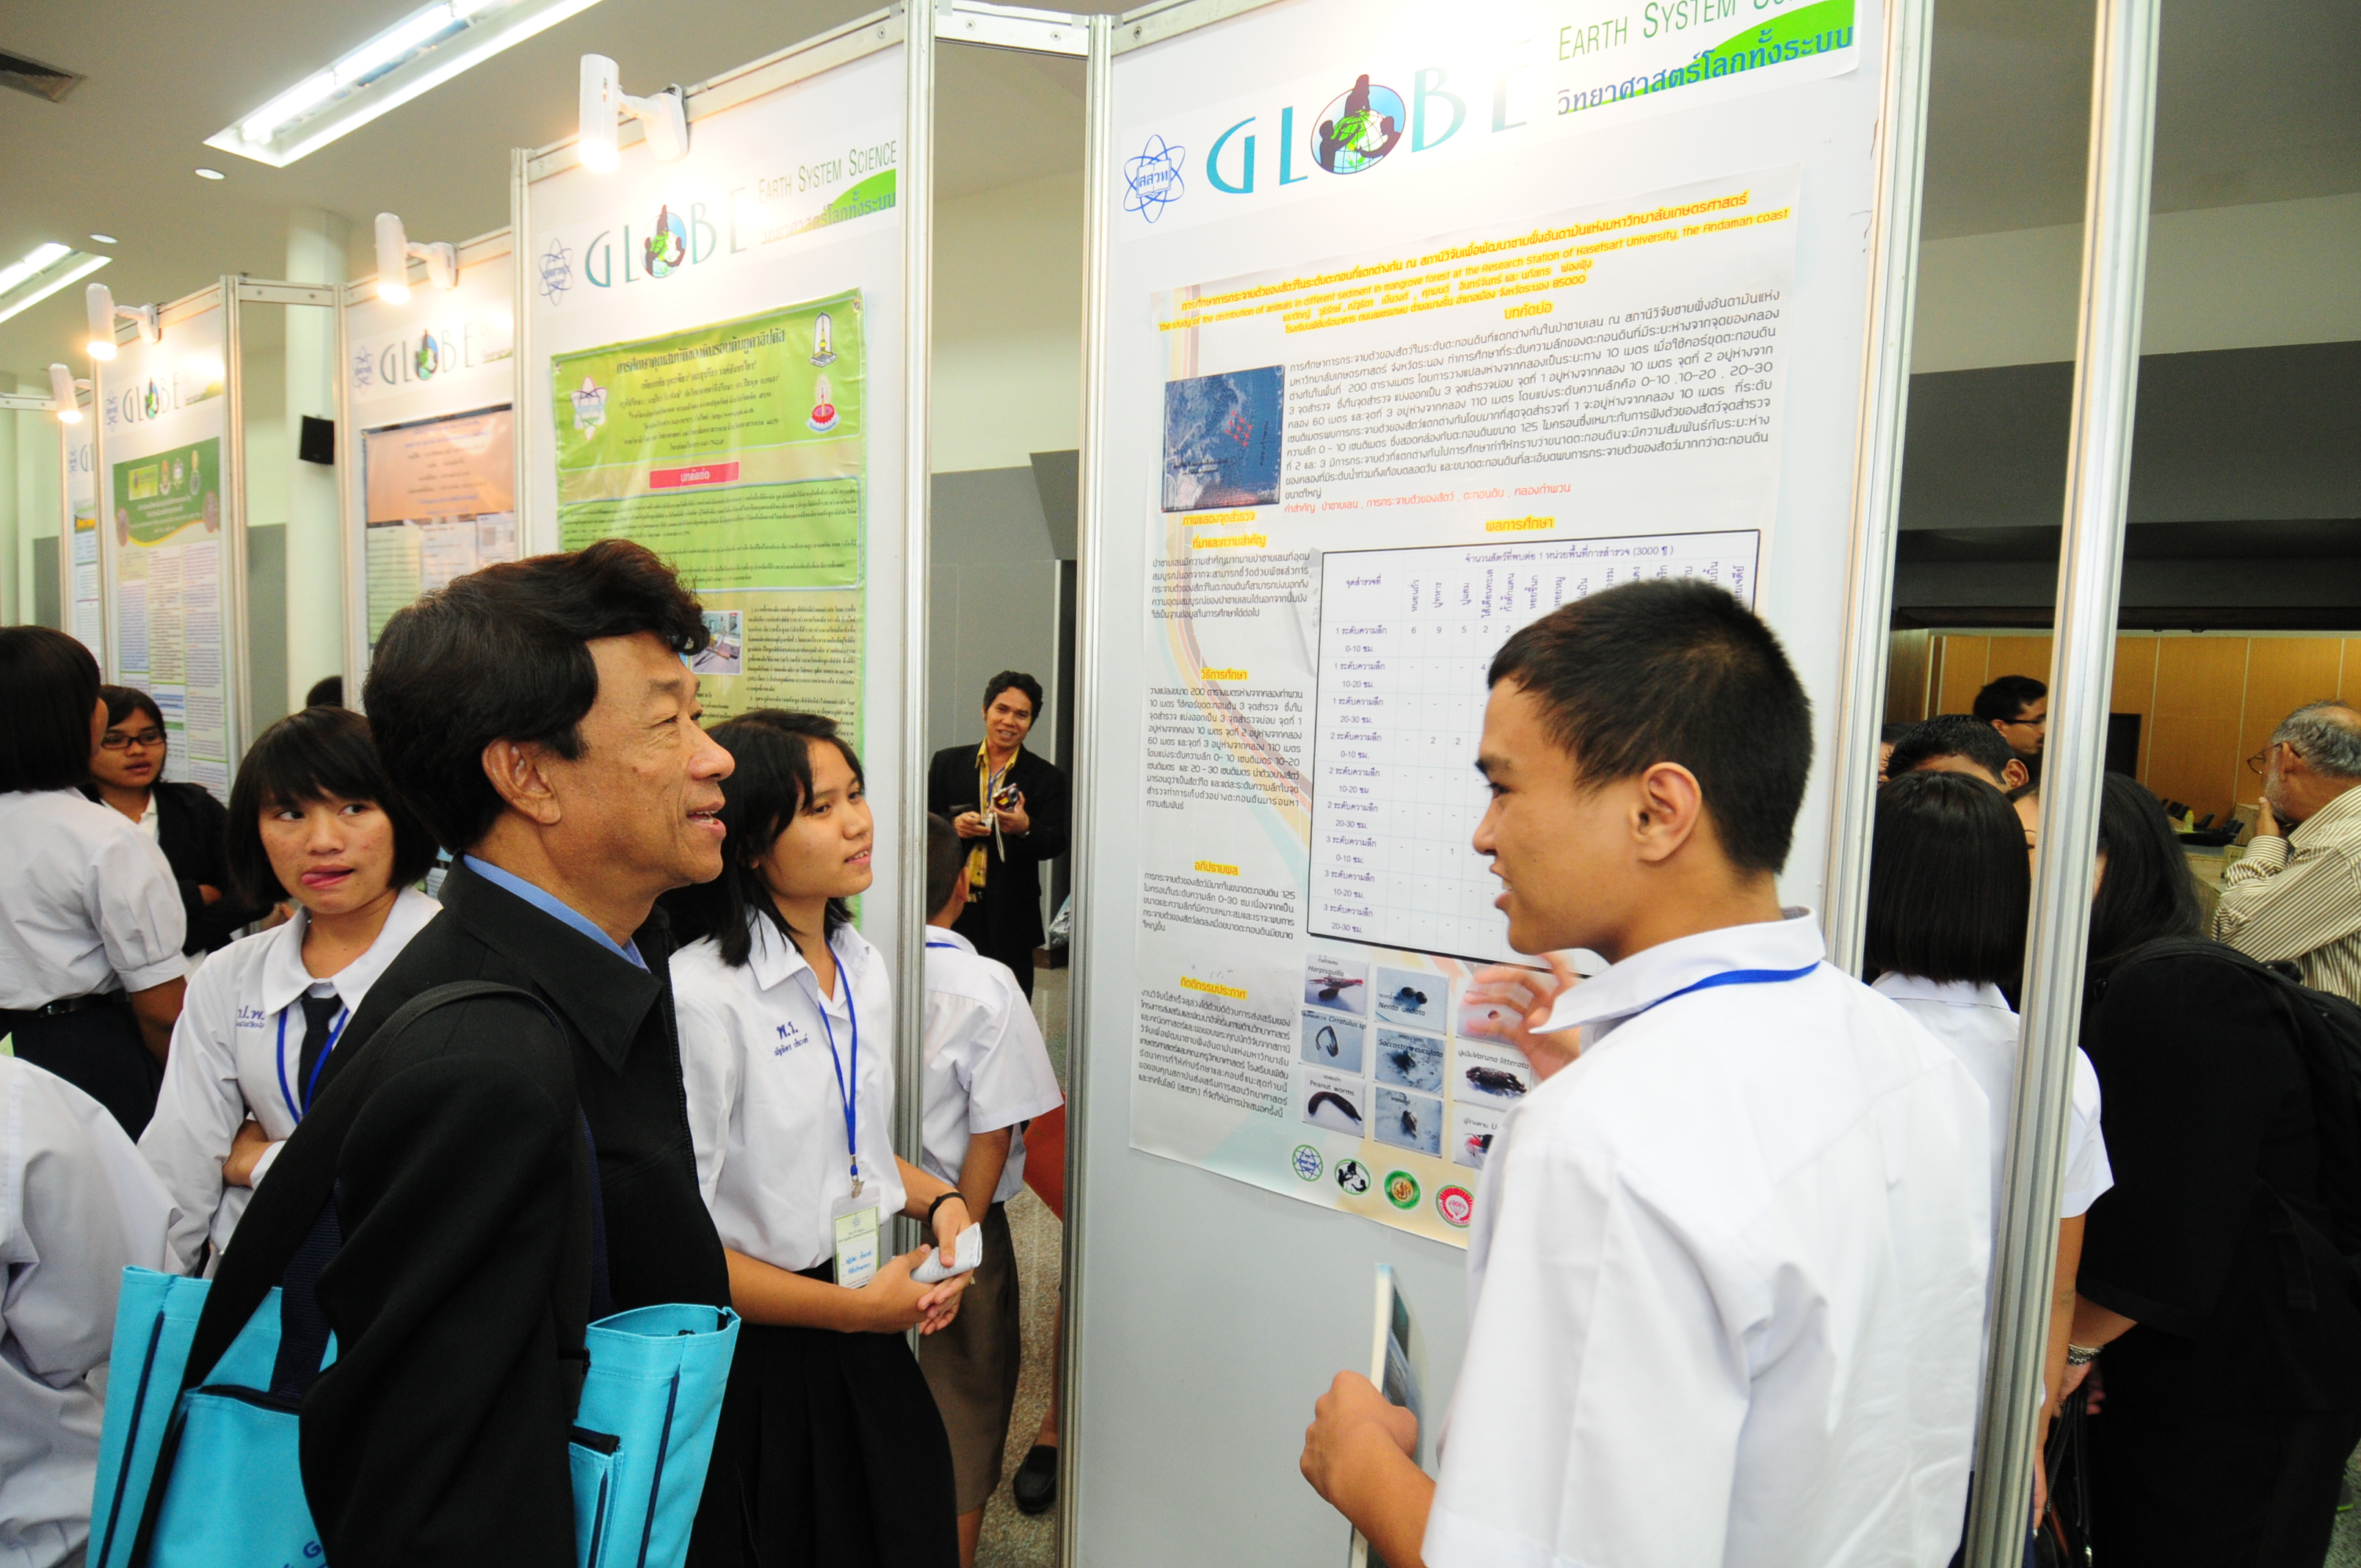 A student discusses their poster with an attendee